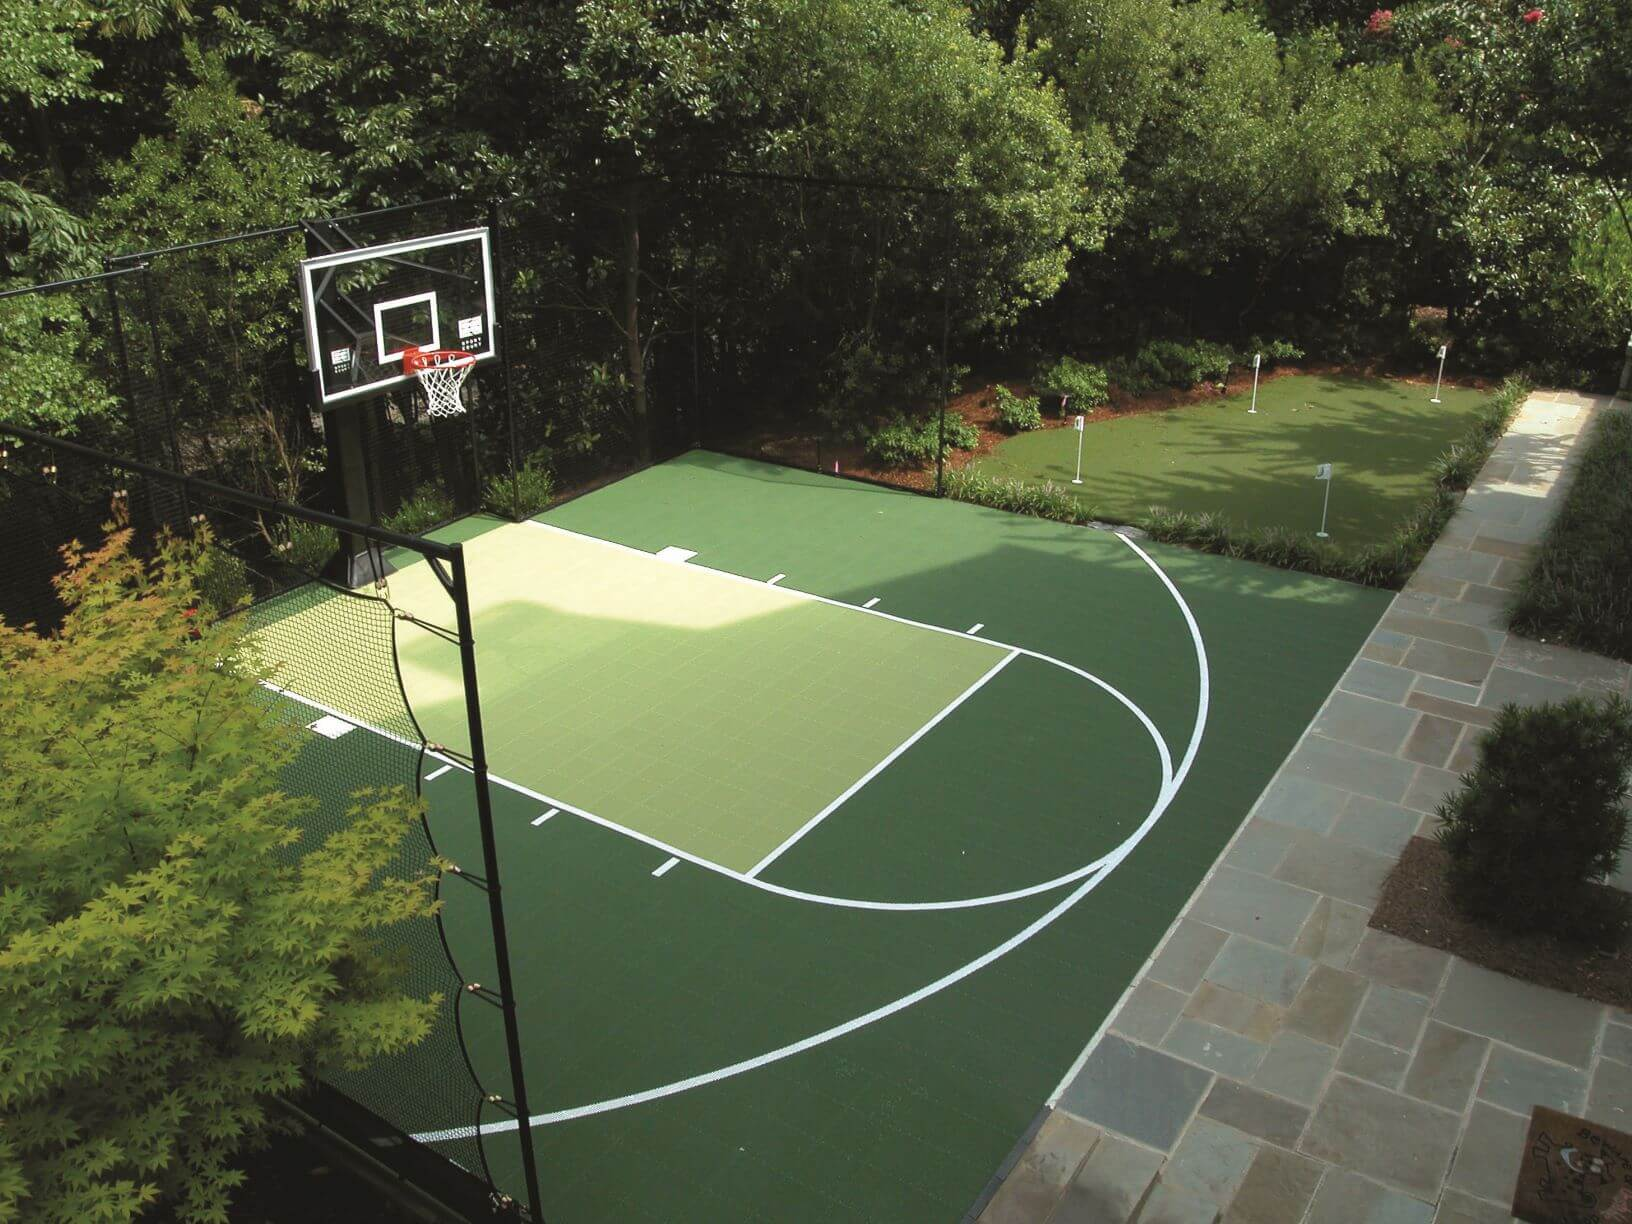 Backyard Sport Court Basketball Court Green and Kiwi